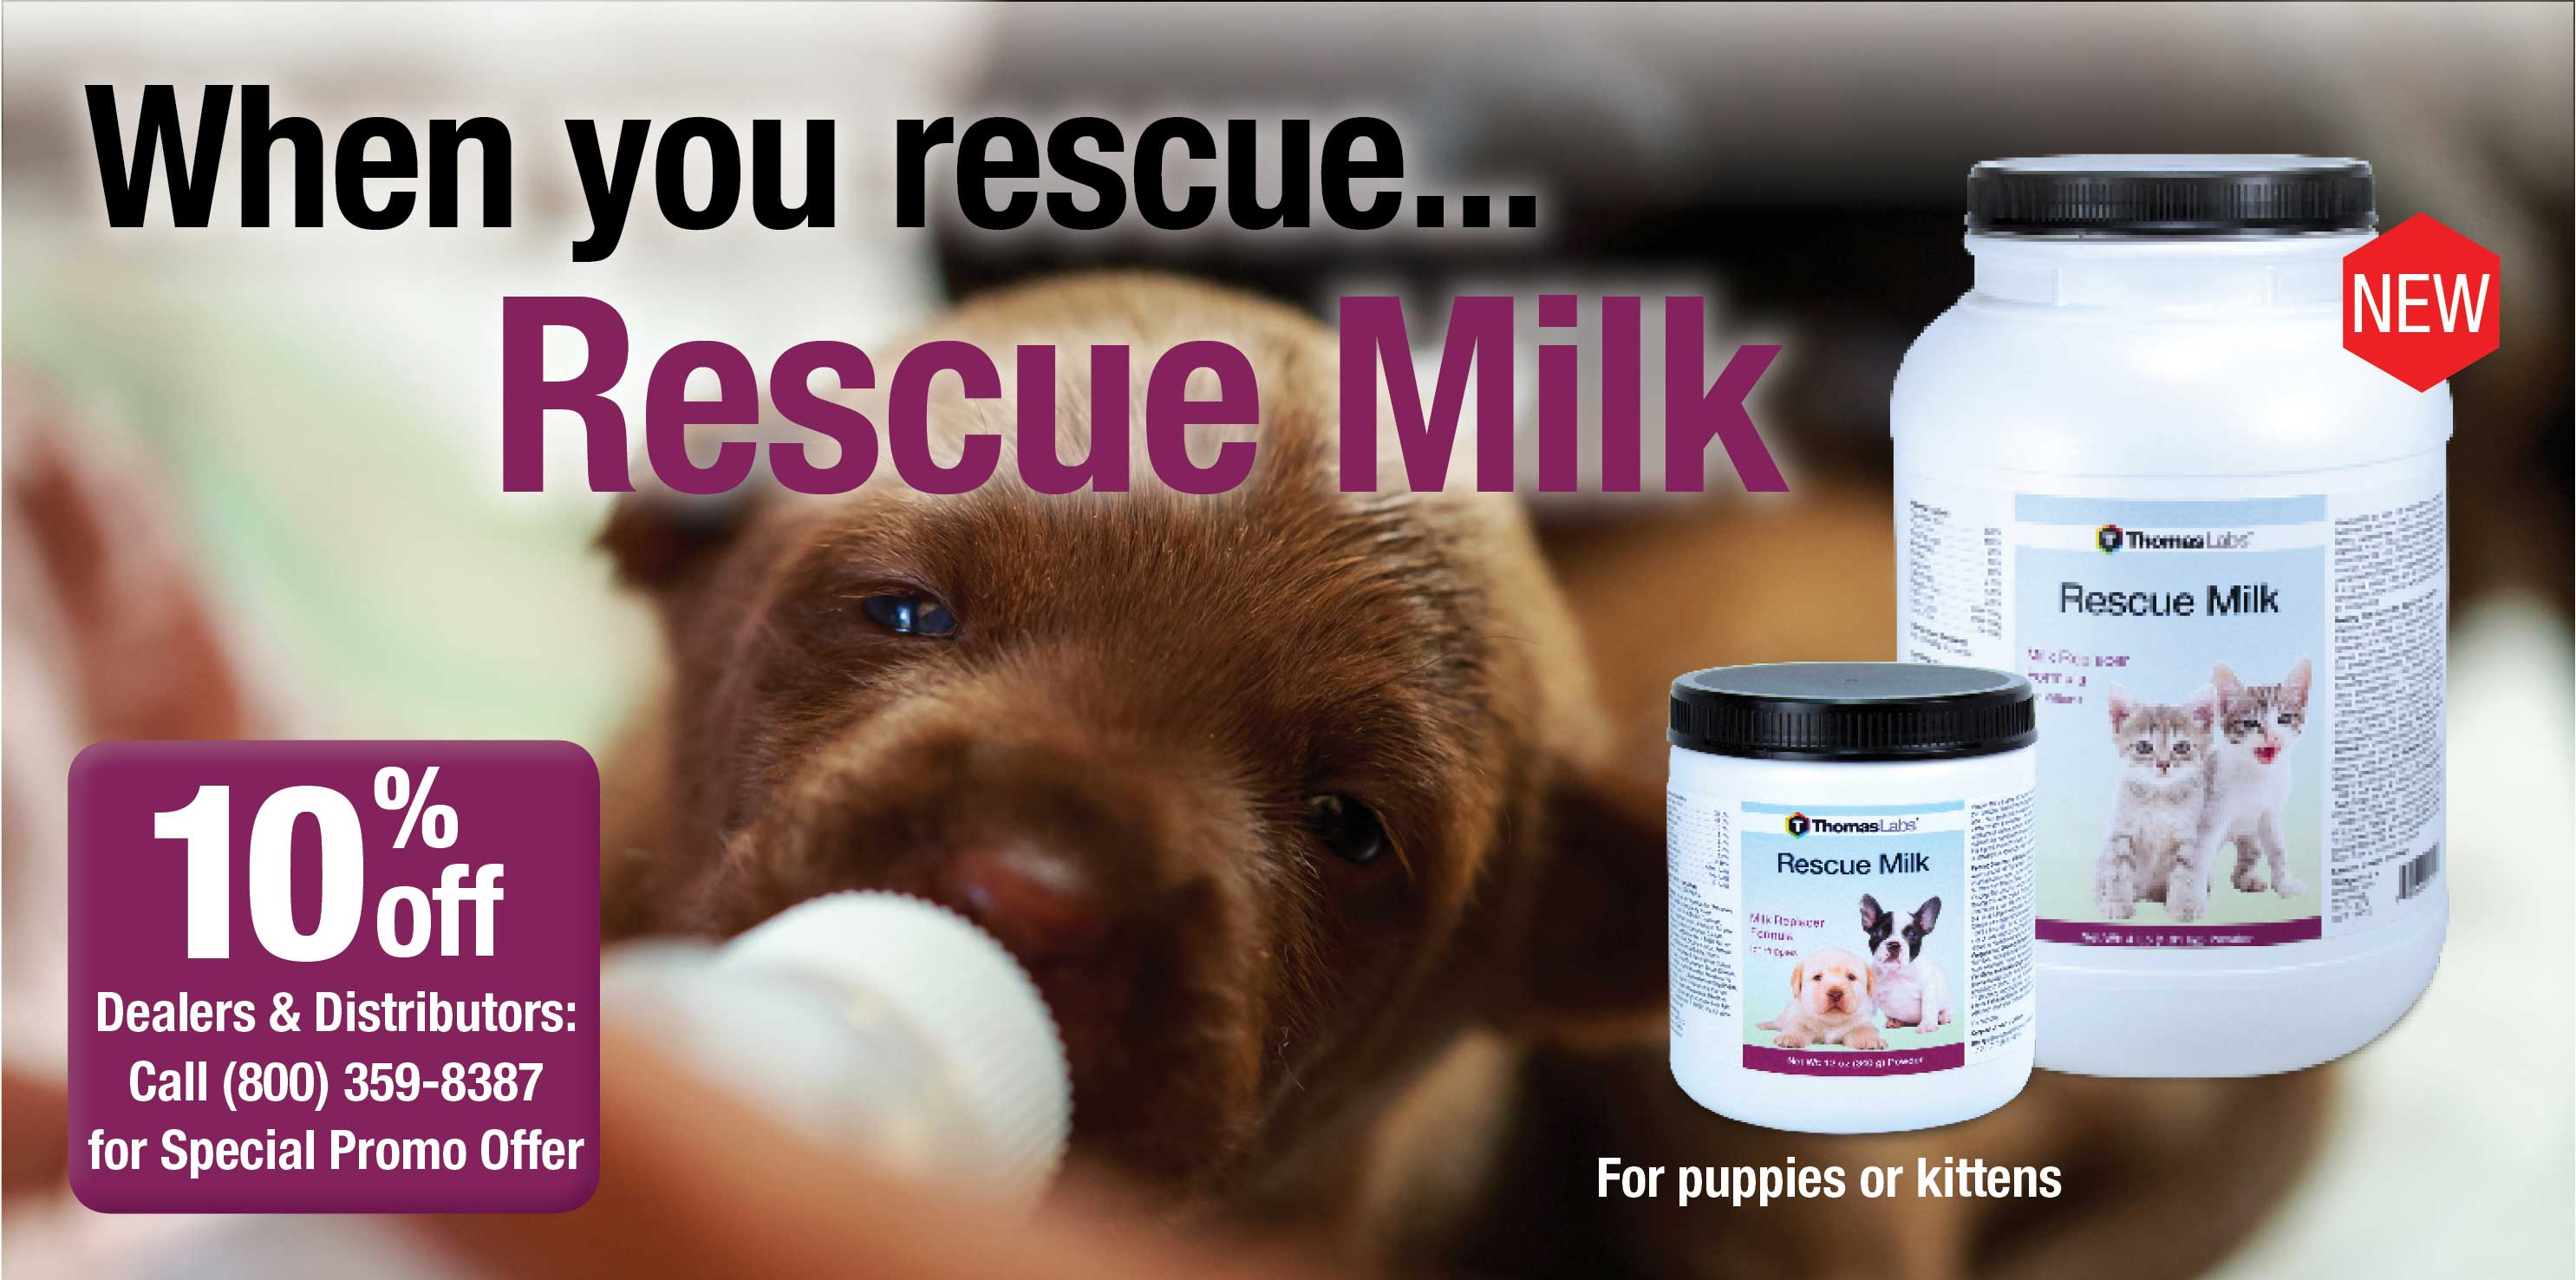 A better puppy milk replacer - Rescue Milk from Thomas Labs